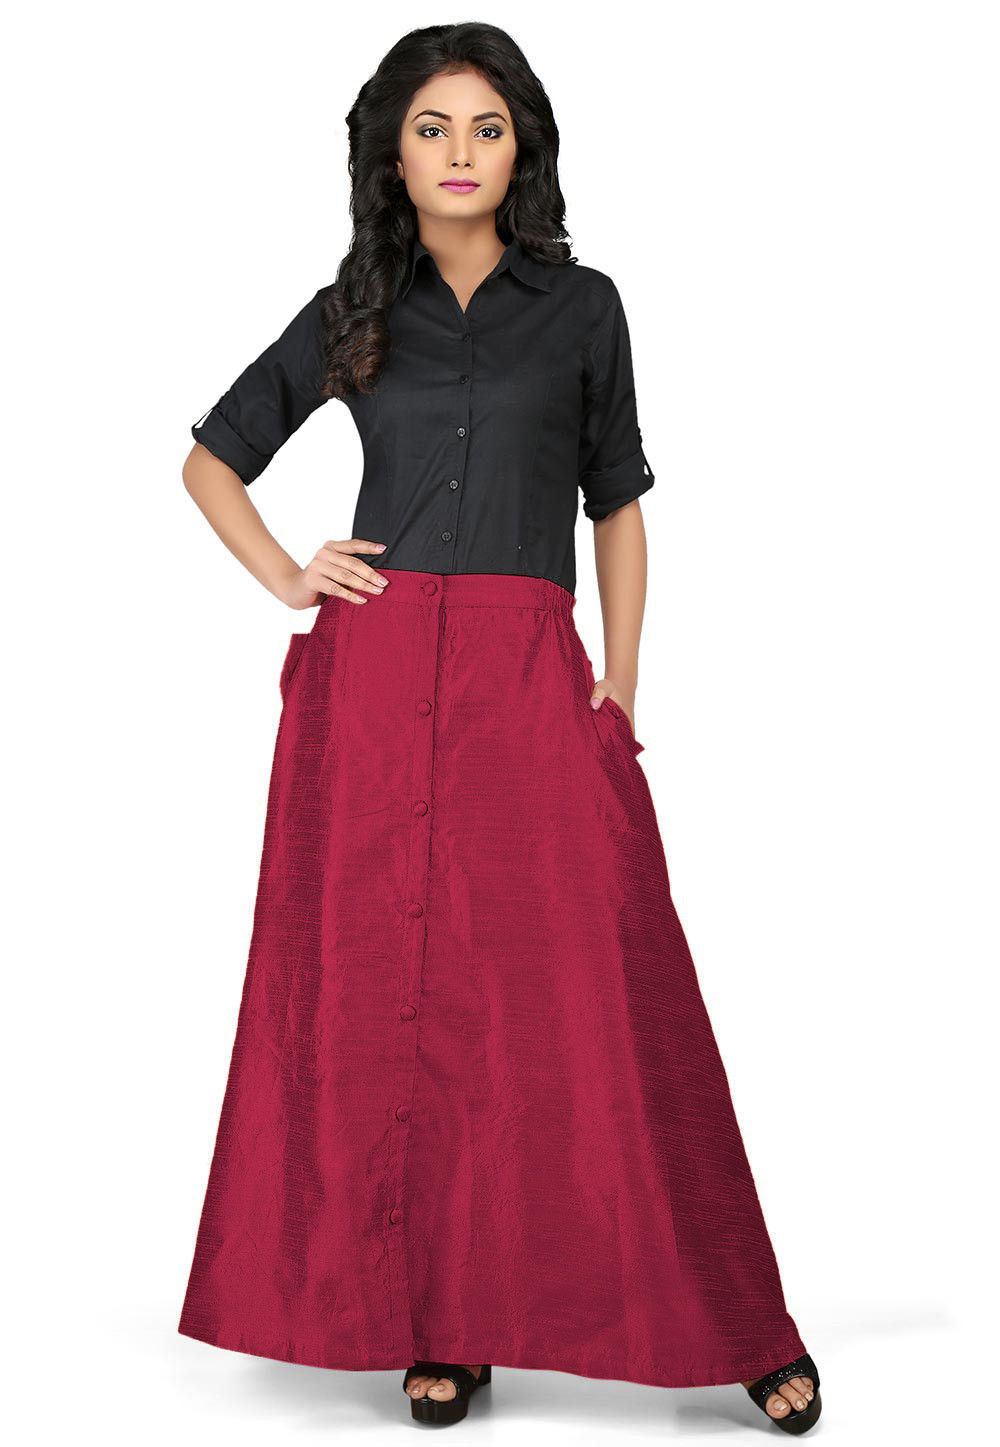 Solid Color Dupion Silk Long Skirt in Magenta